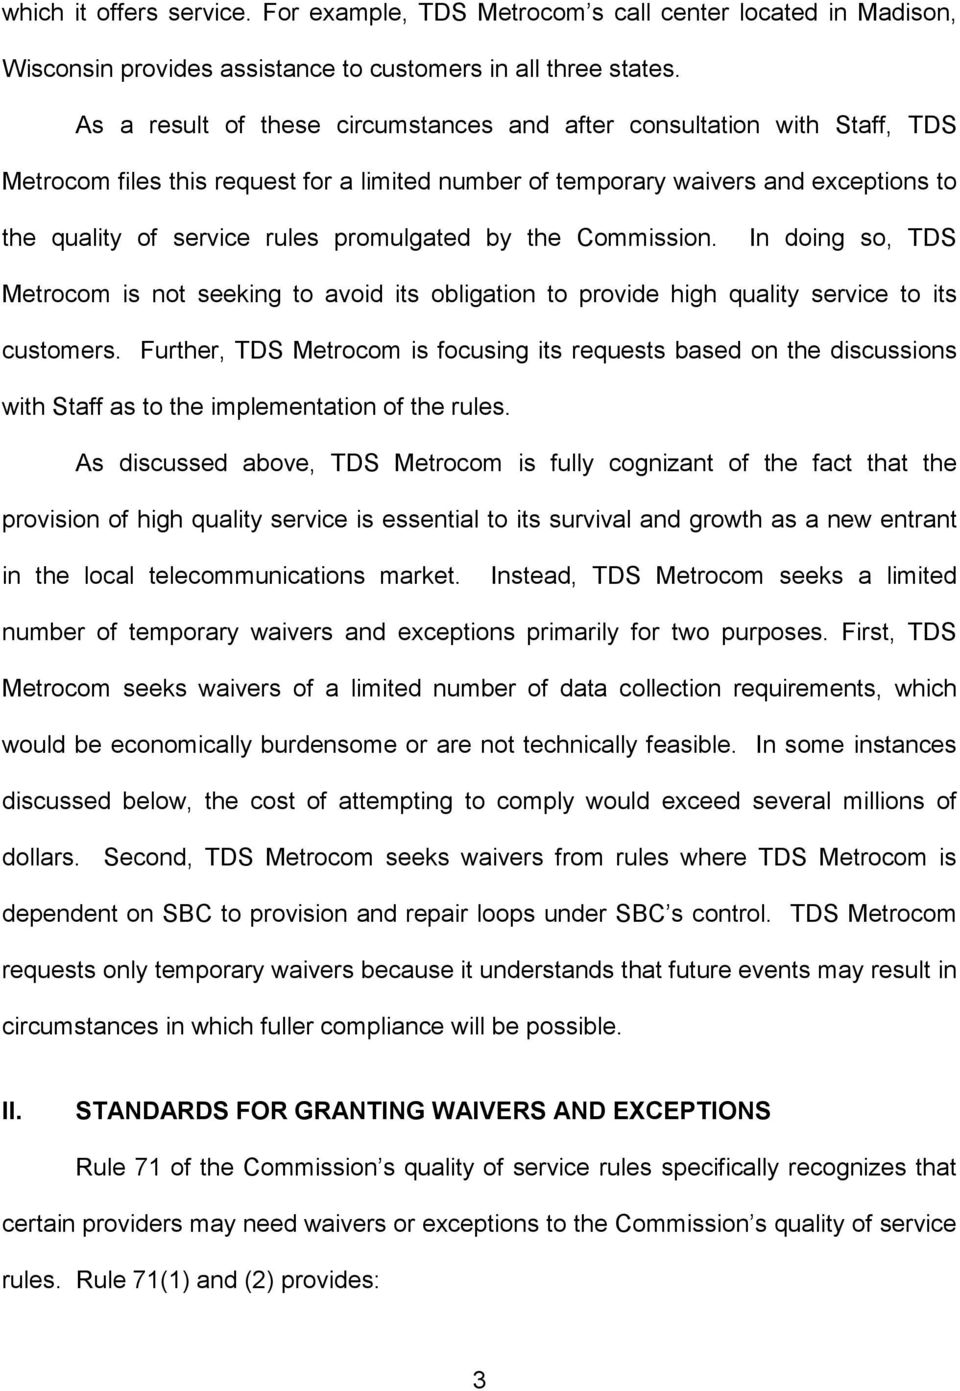 promulgated by the Commission. In doing so, TDS Metrocom is not seeking to avoid its obligation to provide high quality service to its customers.